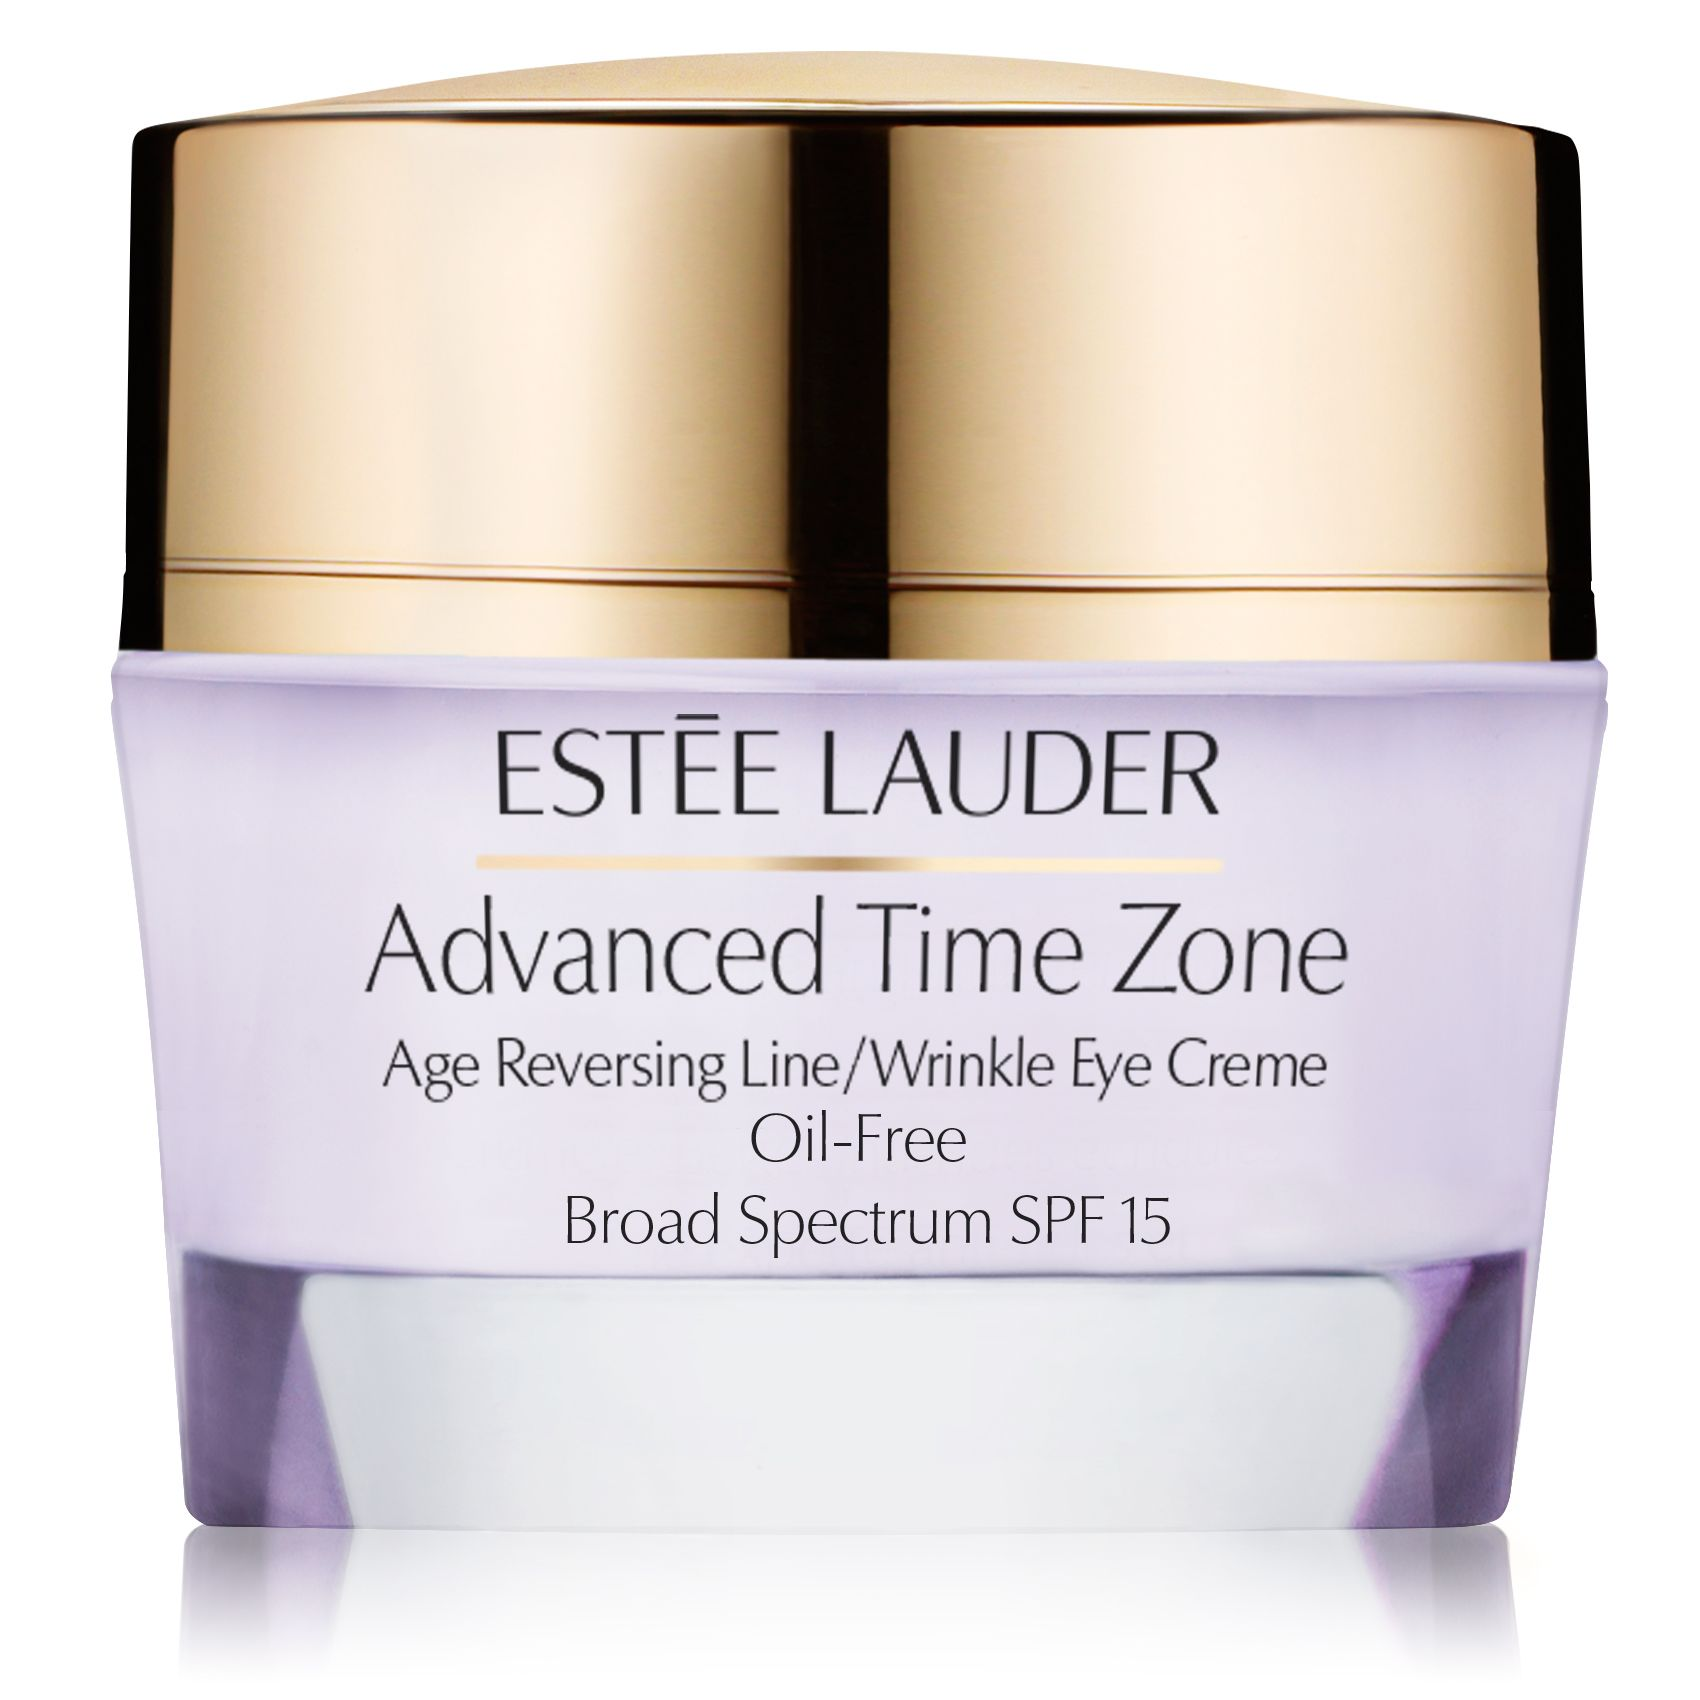 Advanced Time Zone Age Reversing Creme Oil-Free